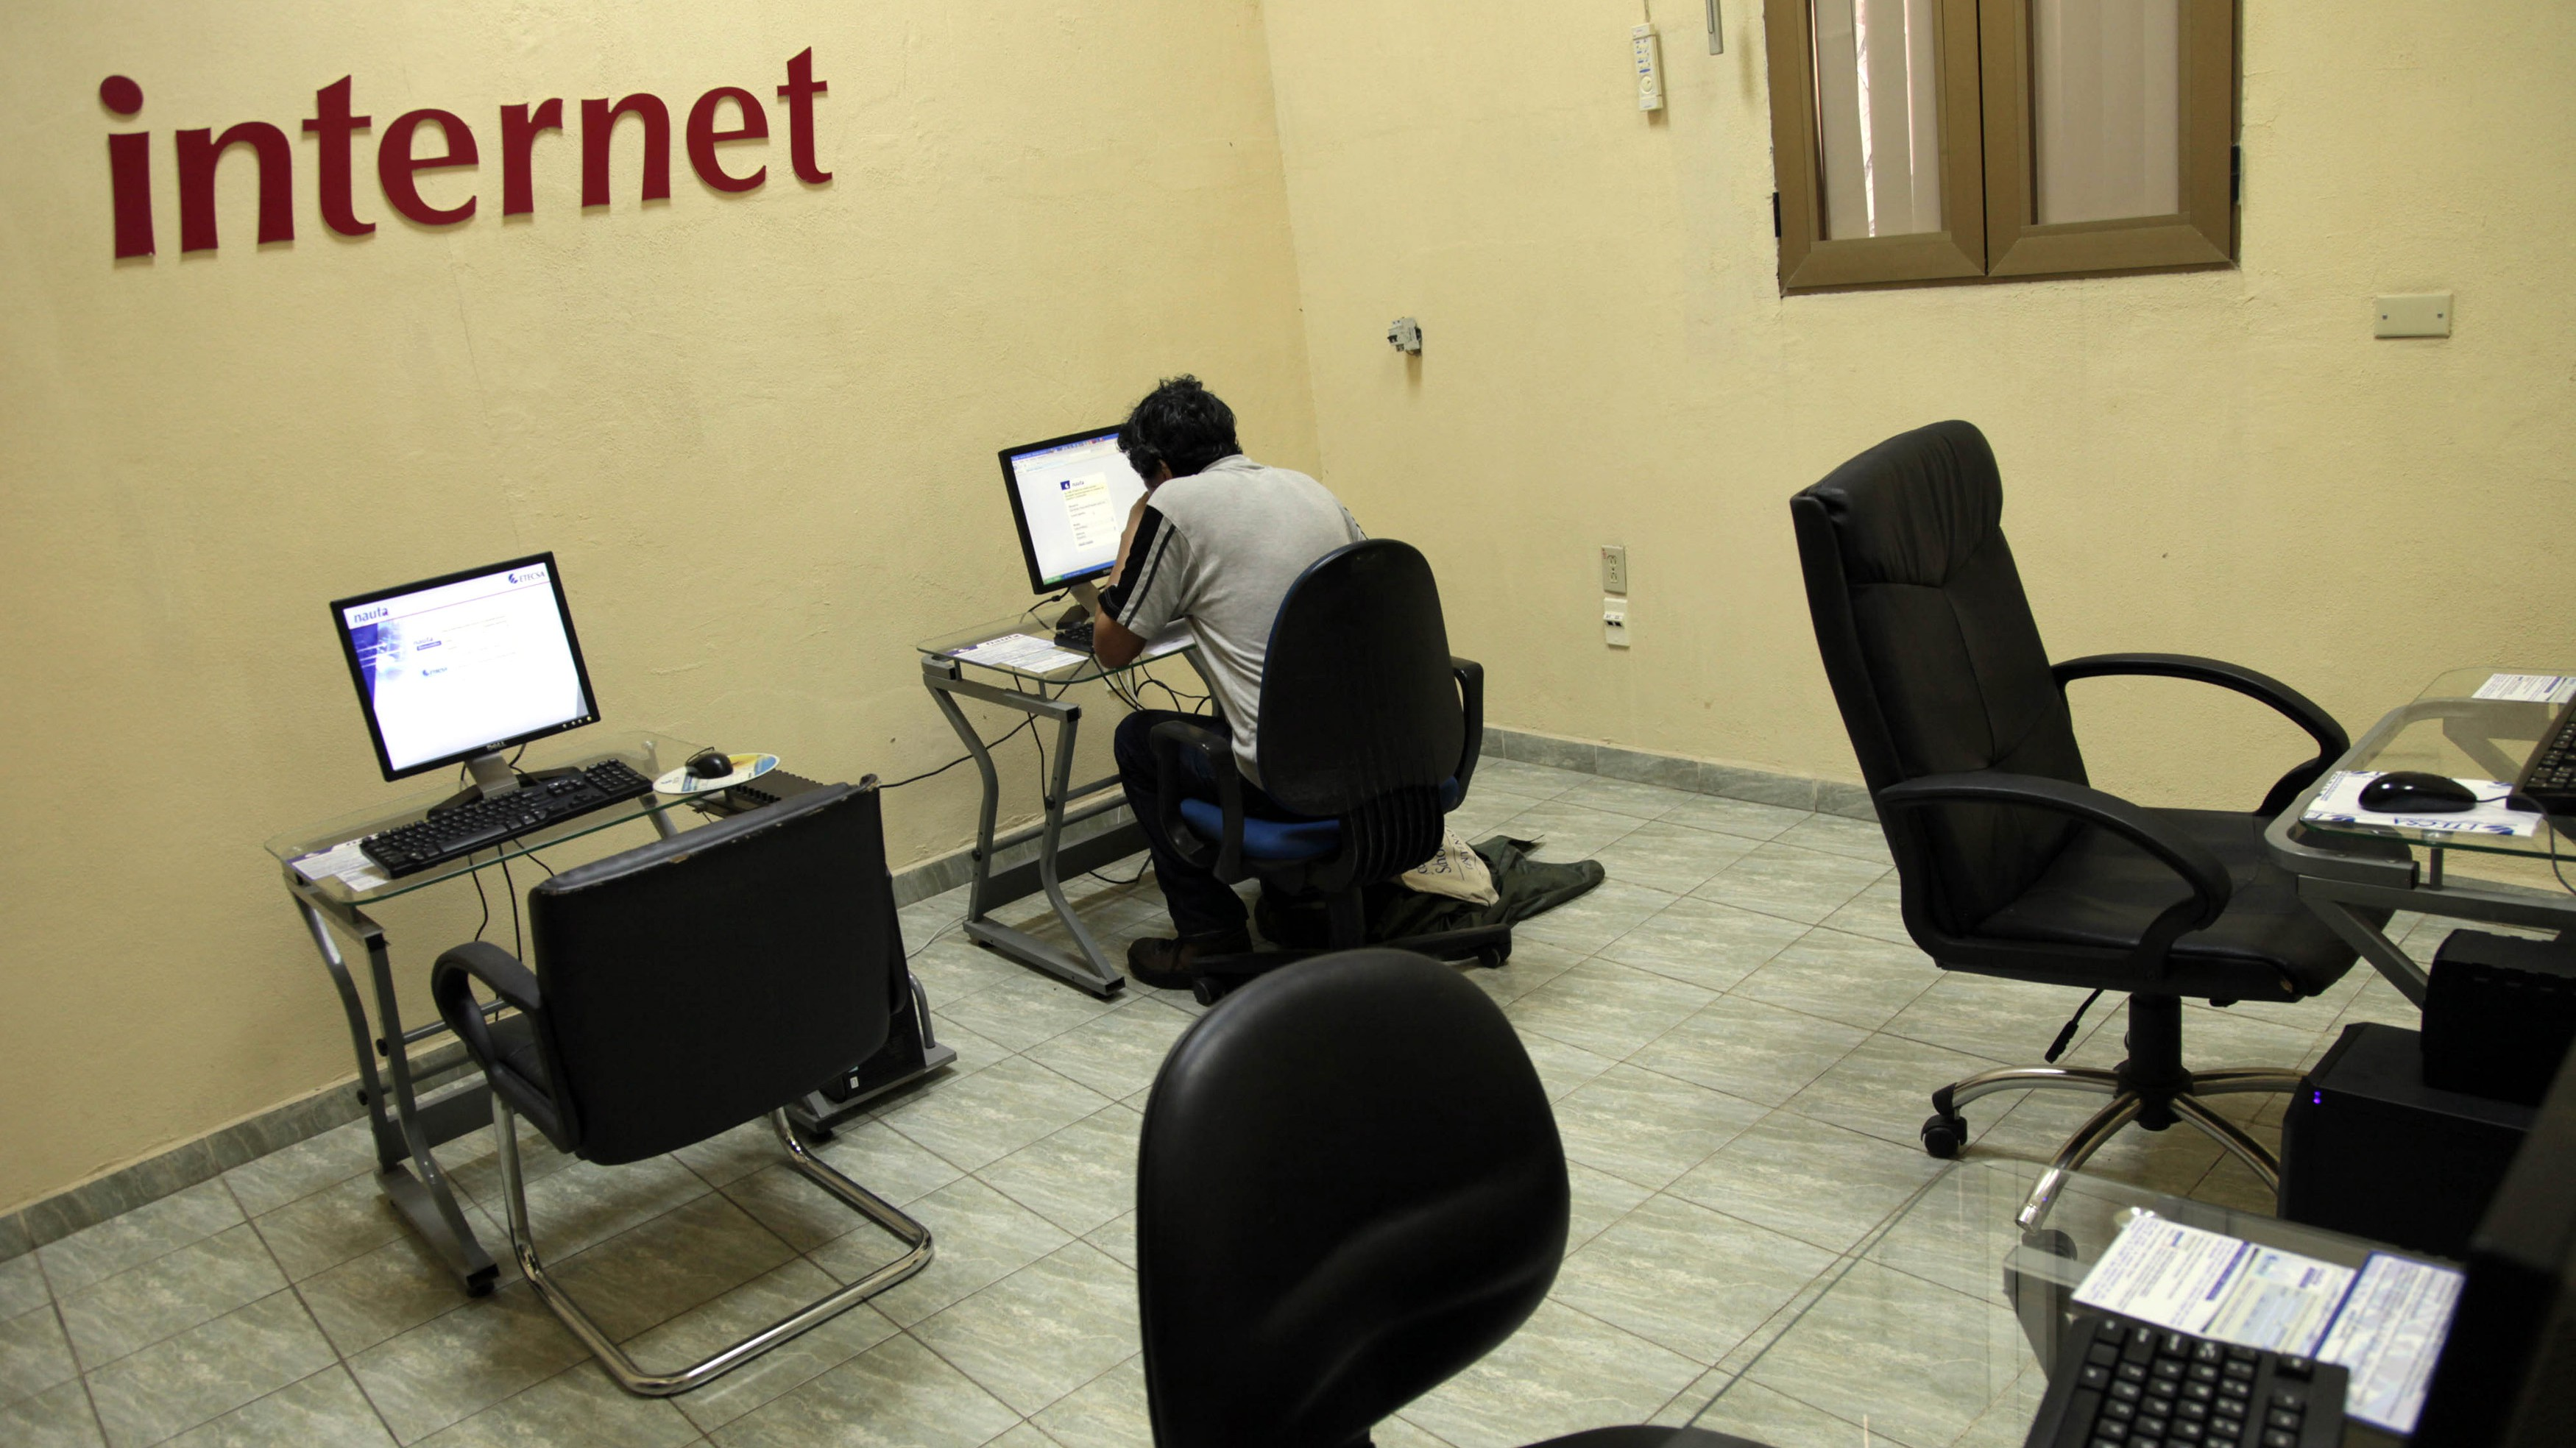 """An Internet user surfs the net at a branch of the state-run telecommunications company, ETECSA, in Havana June 4, 2013. Cuba began offering broader Internet access through 118 outlets around the country, according to a decree in the government's Official Gazette, in a step long awaited by many Cubans. The decree made clear that the new Internet access would be closely monitored, warning users it could not be used to """"endanger or prejudice public security, or the integrity and sovereignty of the nation."""""""